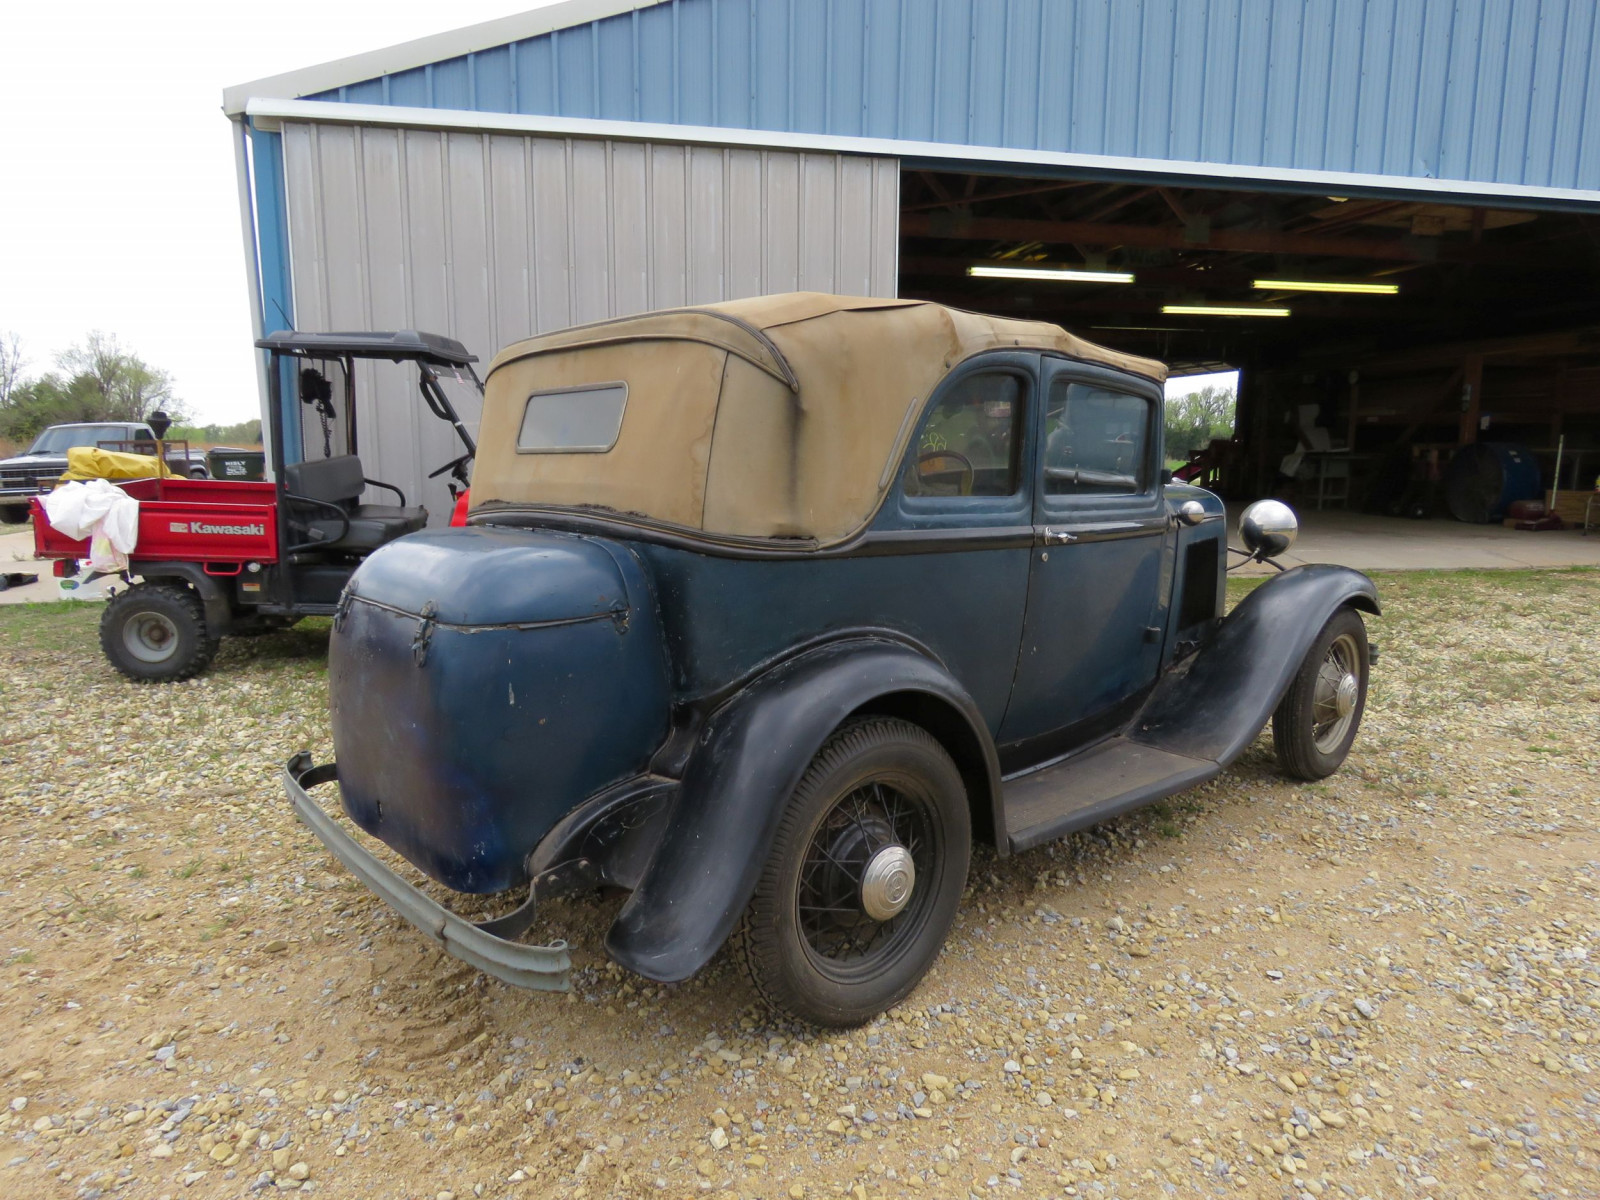 RARE 1932 FORD B400 2DR CONVERTIBLE V8 SEDAN - Image 5